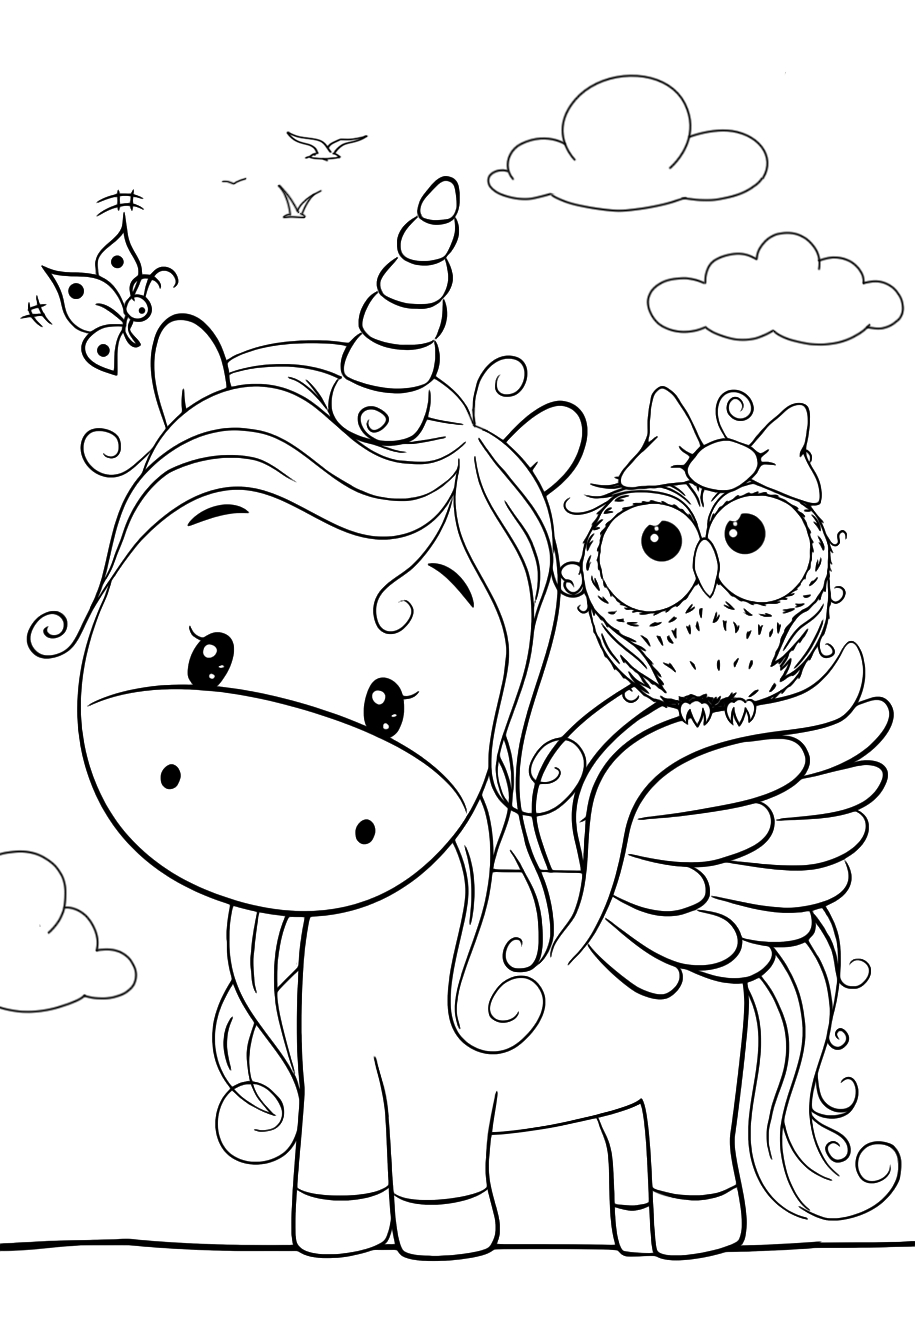 Cute Unicorn with an owl - Coloring pages for you